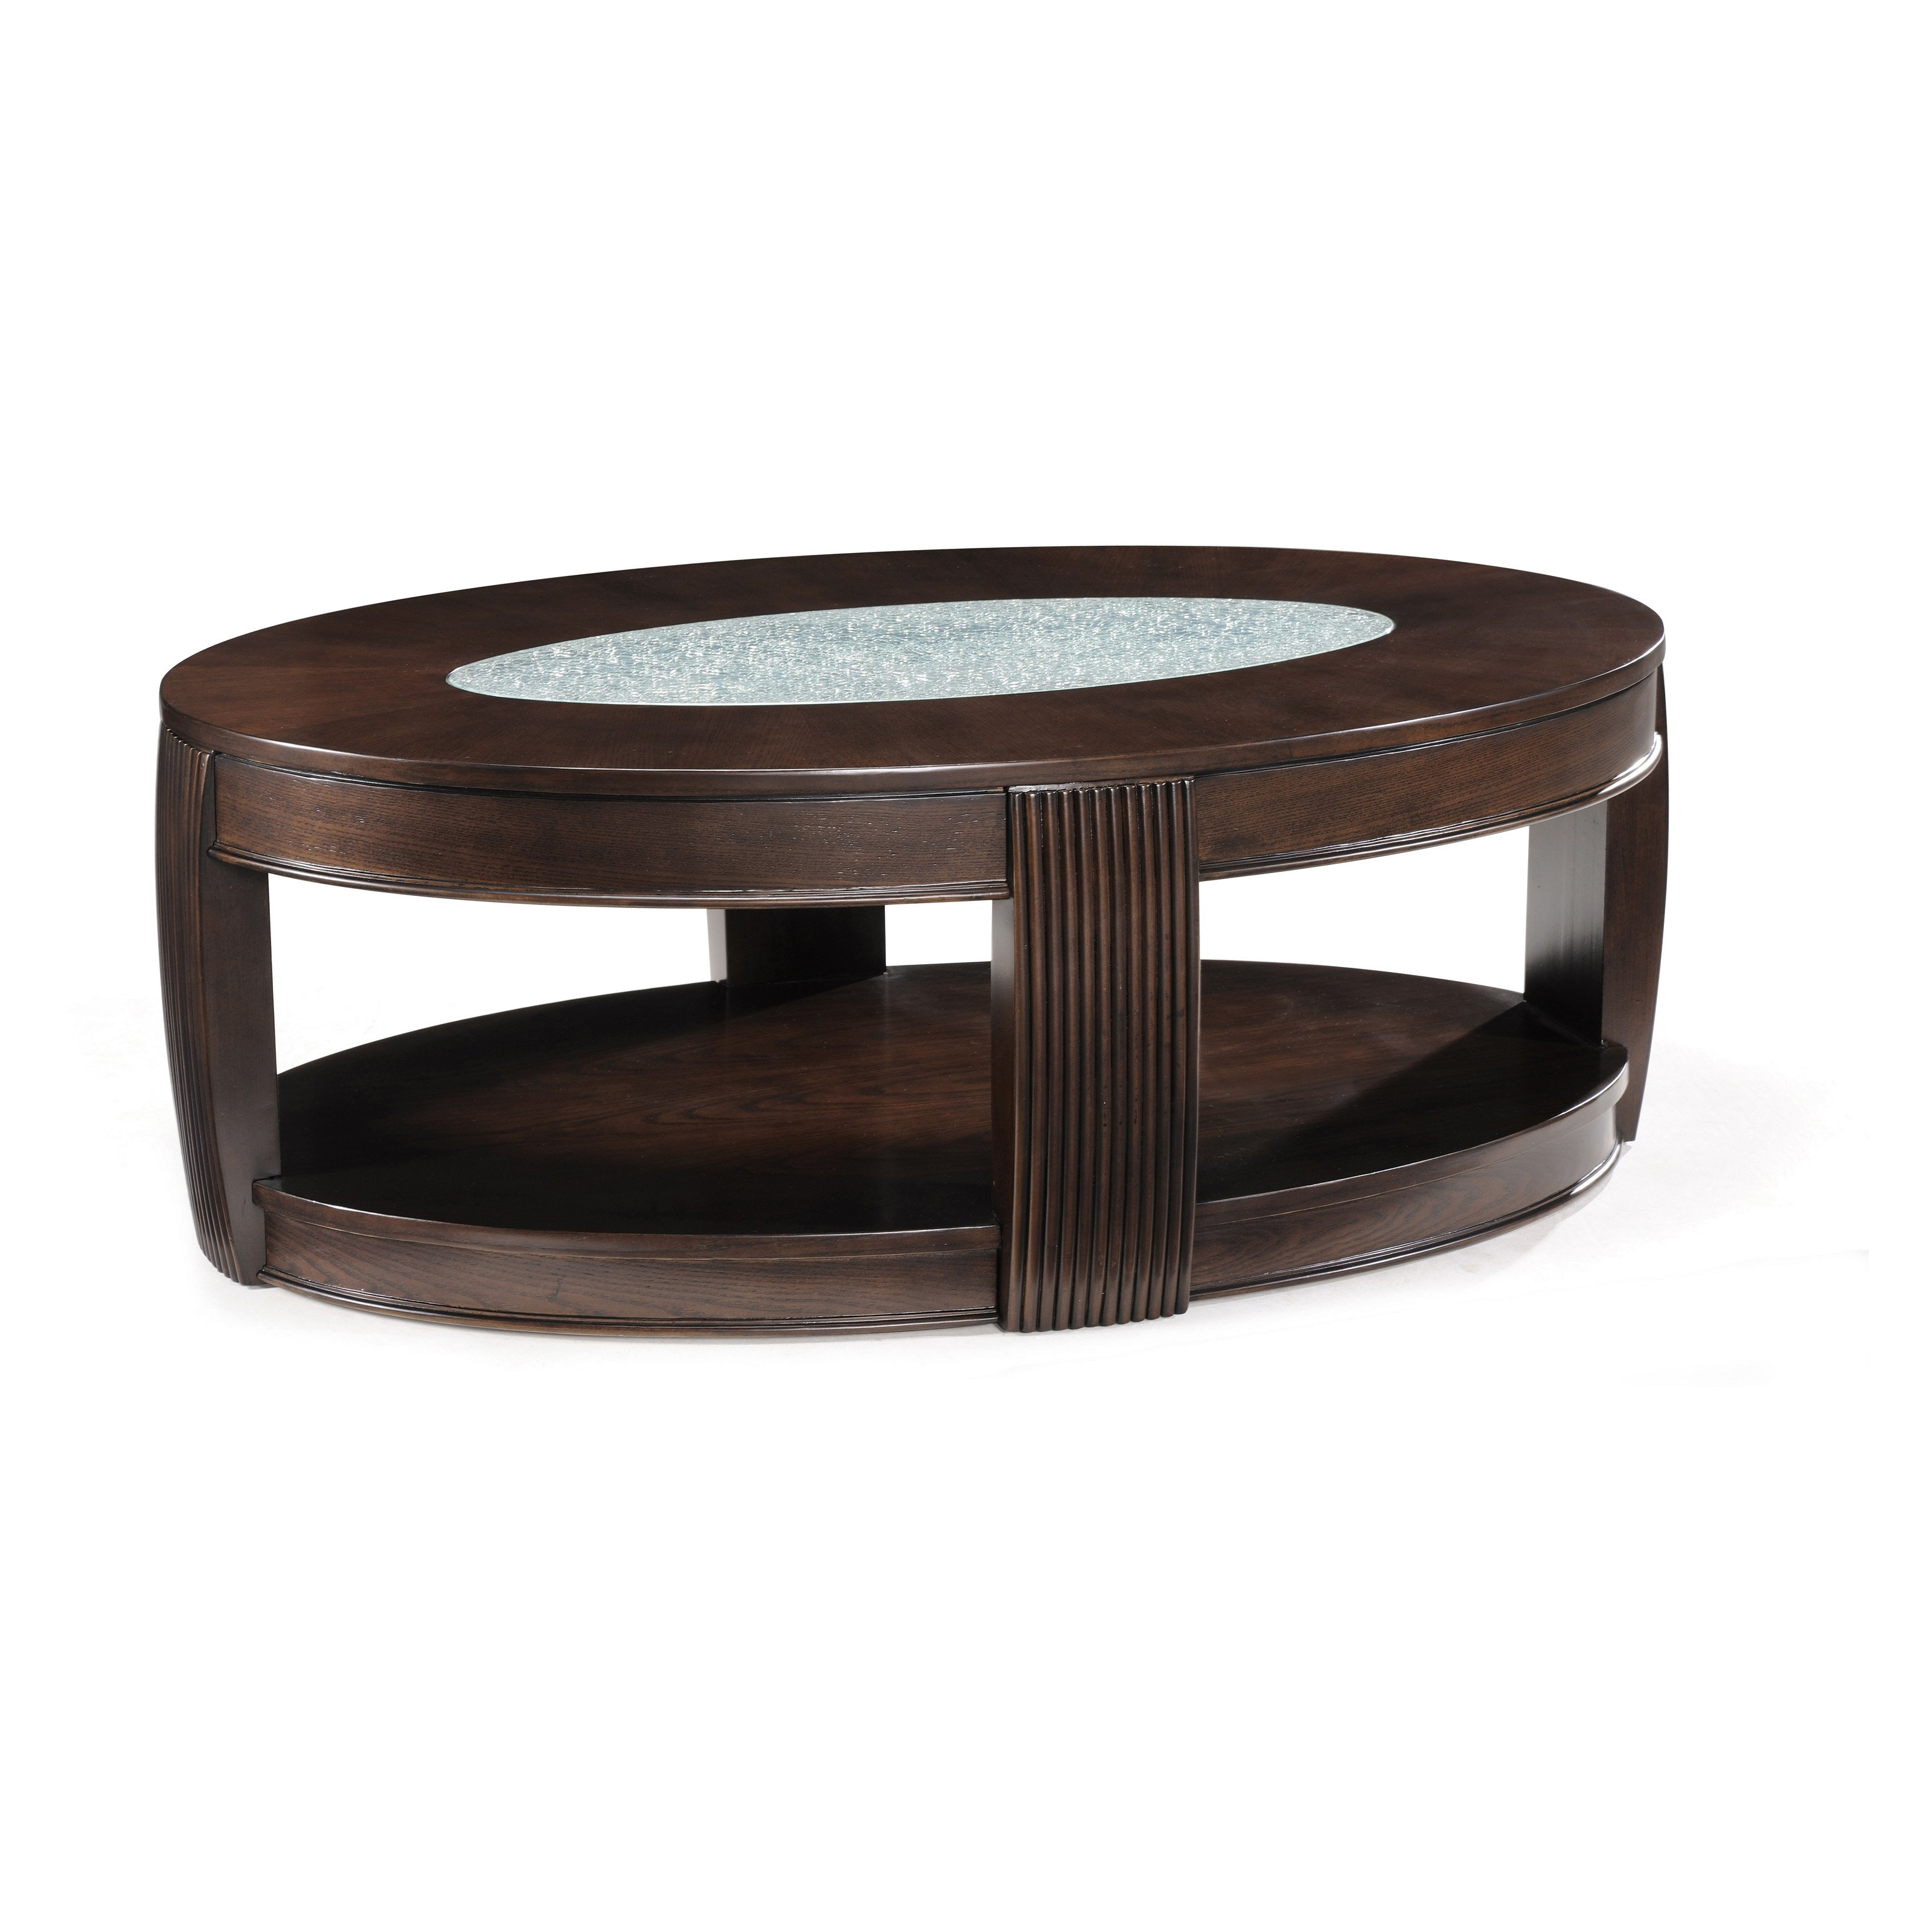 round glass top accent table zef jam small end tables free size low teen furniture black set and iron side desk white throw rug outdoor closet resin log hairpin chrome legs